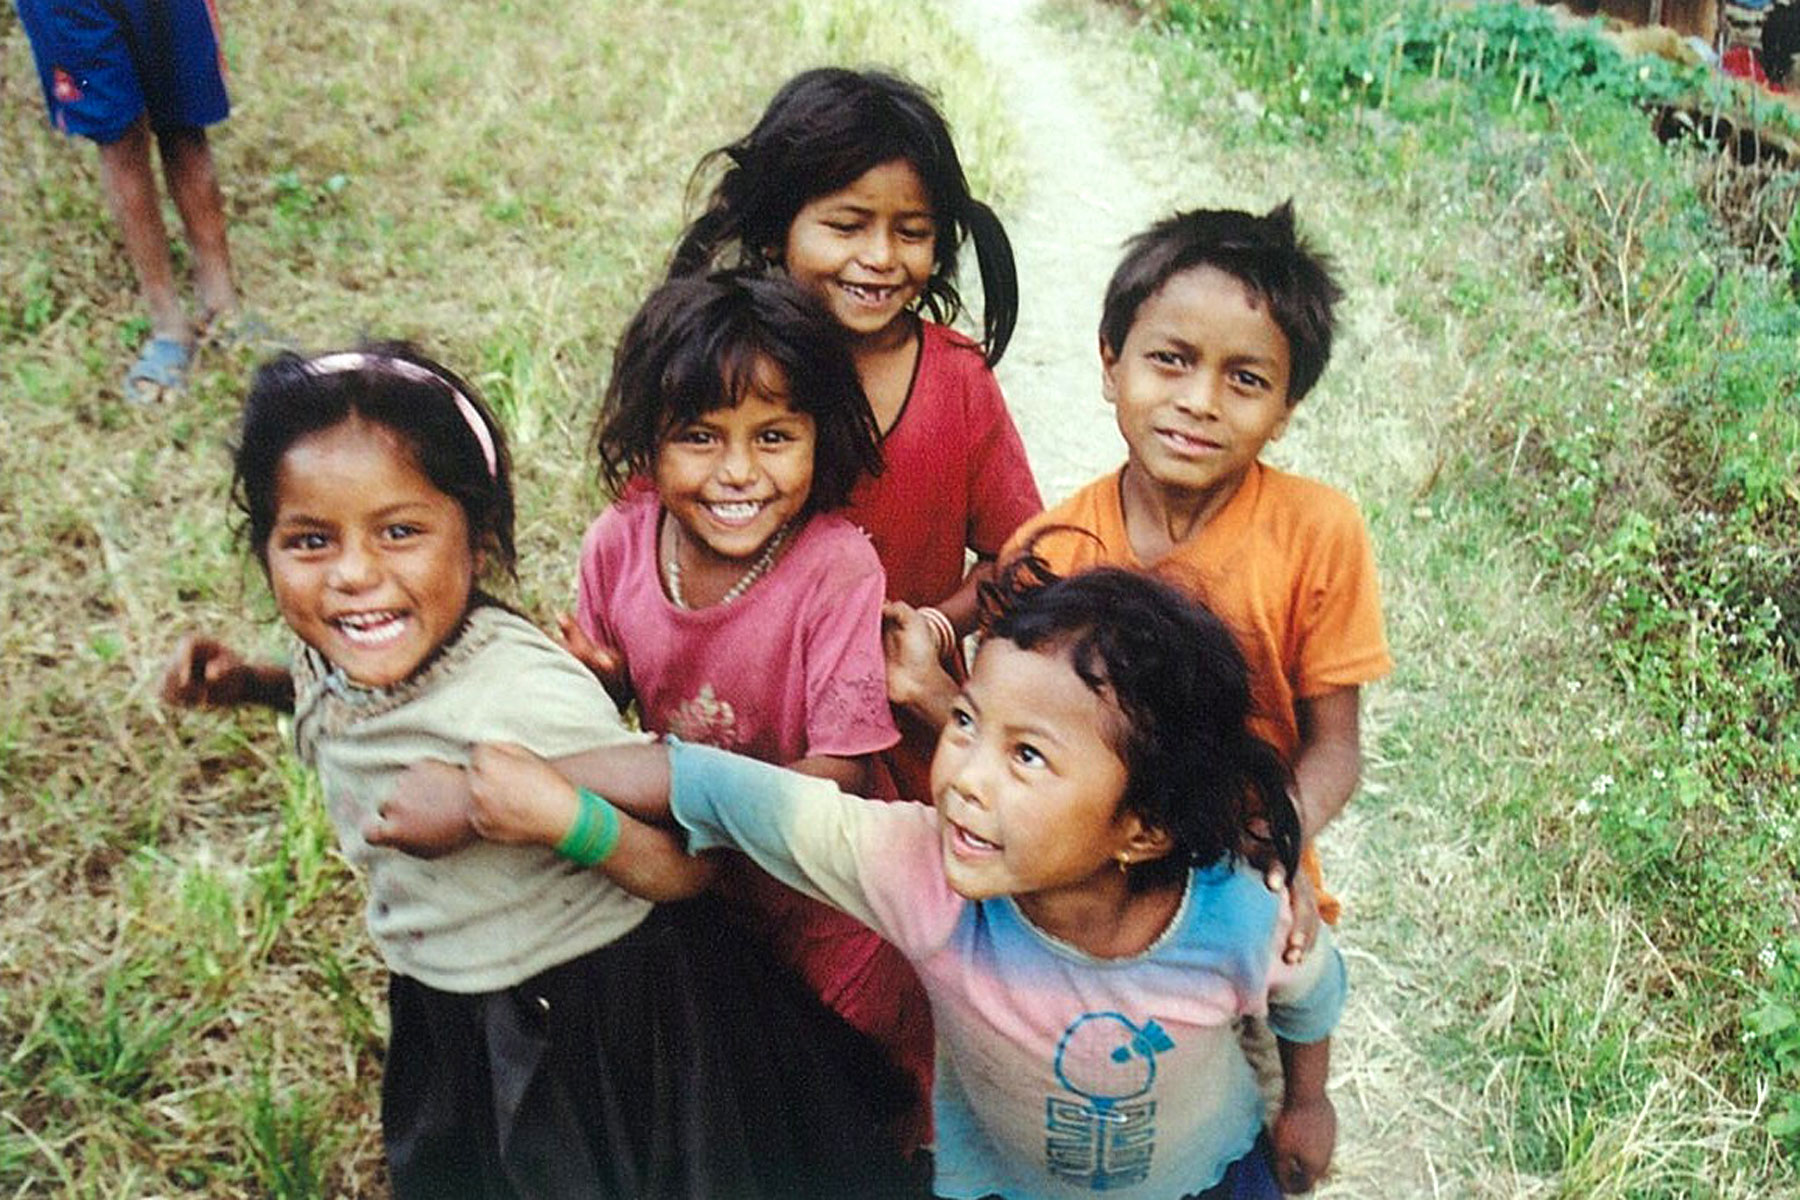 Trekking trek hiking hike Kathmandu Valley Ridge Nepal children